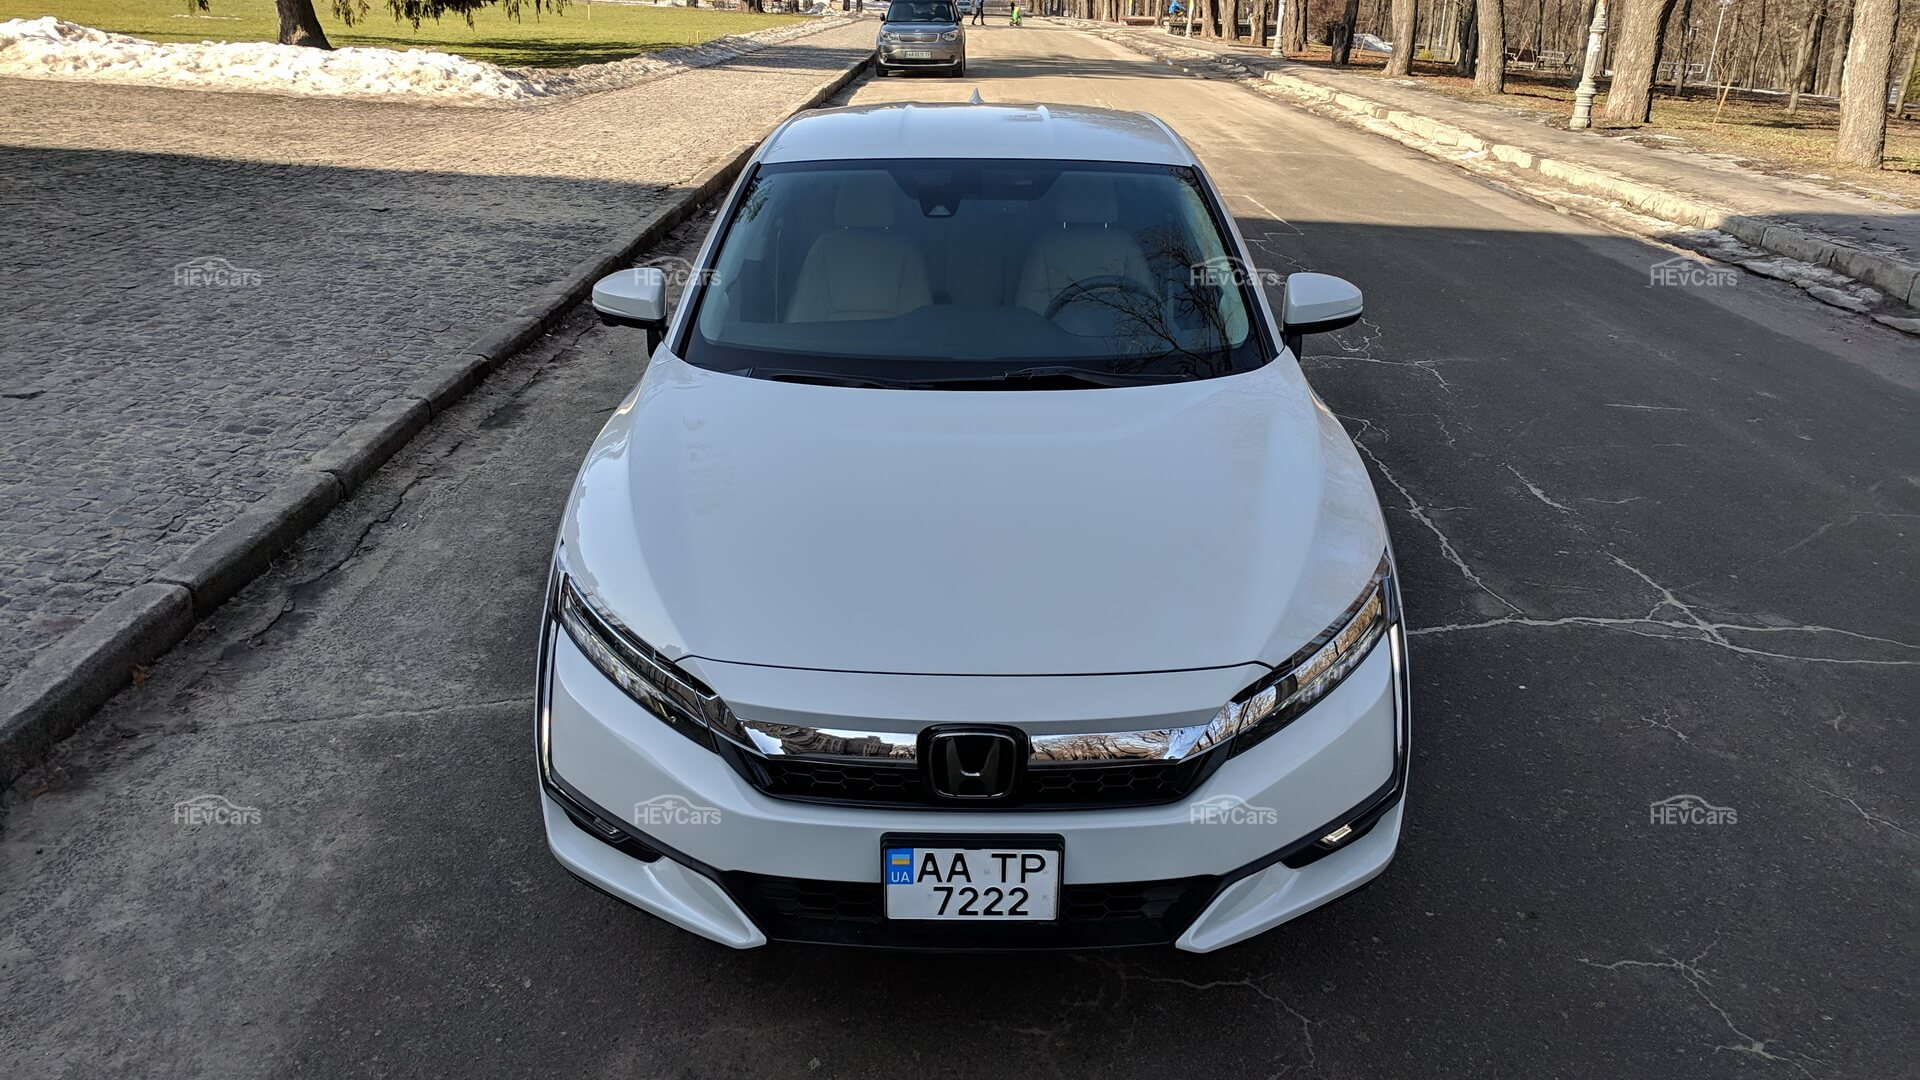 Дизайн Honda Clarity Plug-In Hybrid - вид спереди